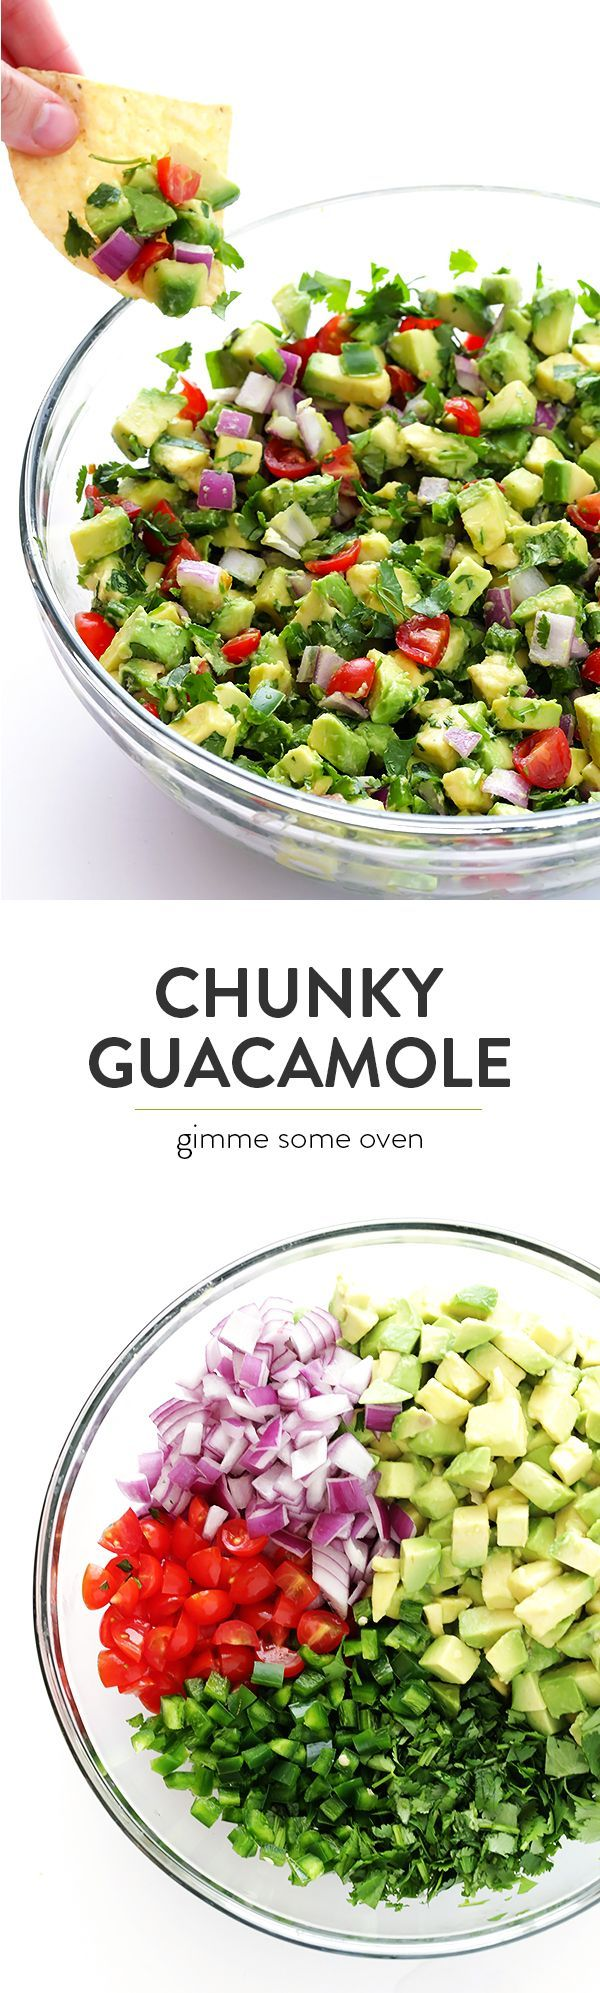 Guacamole This Chunky Guacamole dip recipe is easy to make, and always a crowd pleaser! | This Chunky Guacamole dip recipe is easy to make, and always a crowd pleaser! |